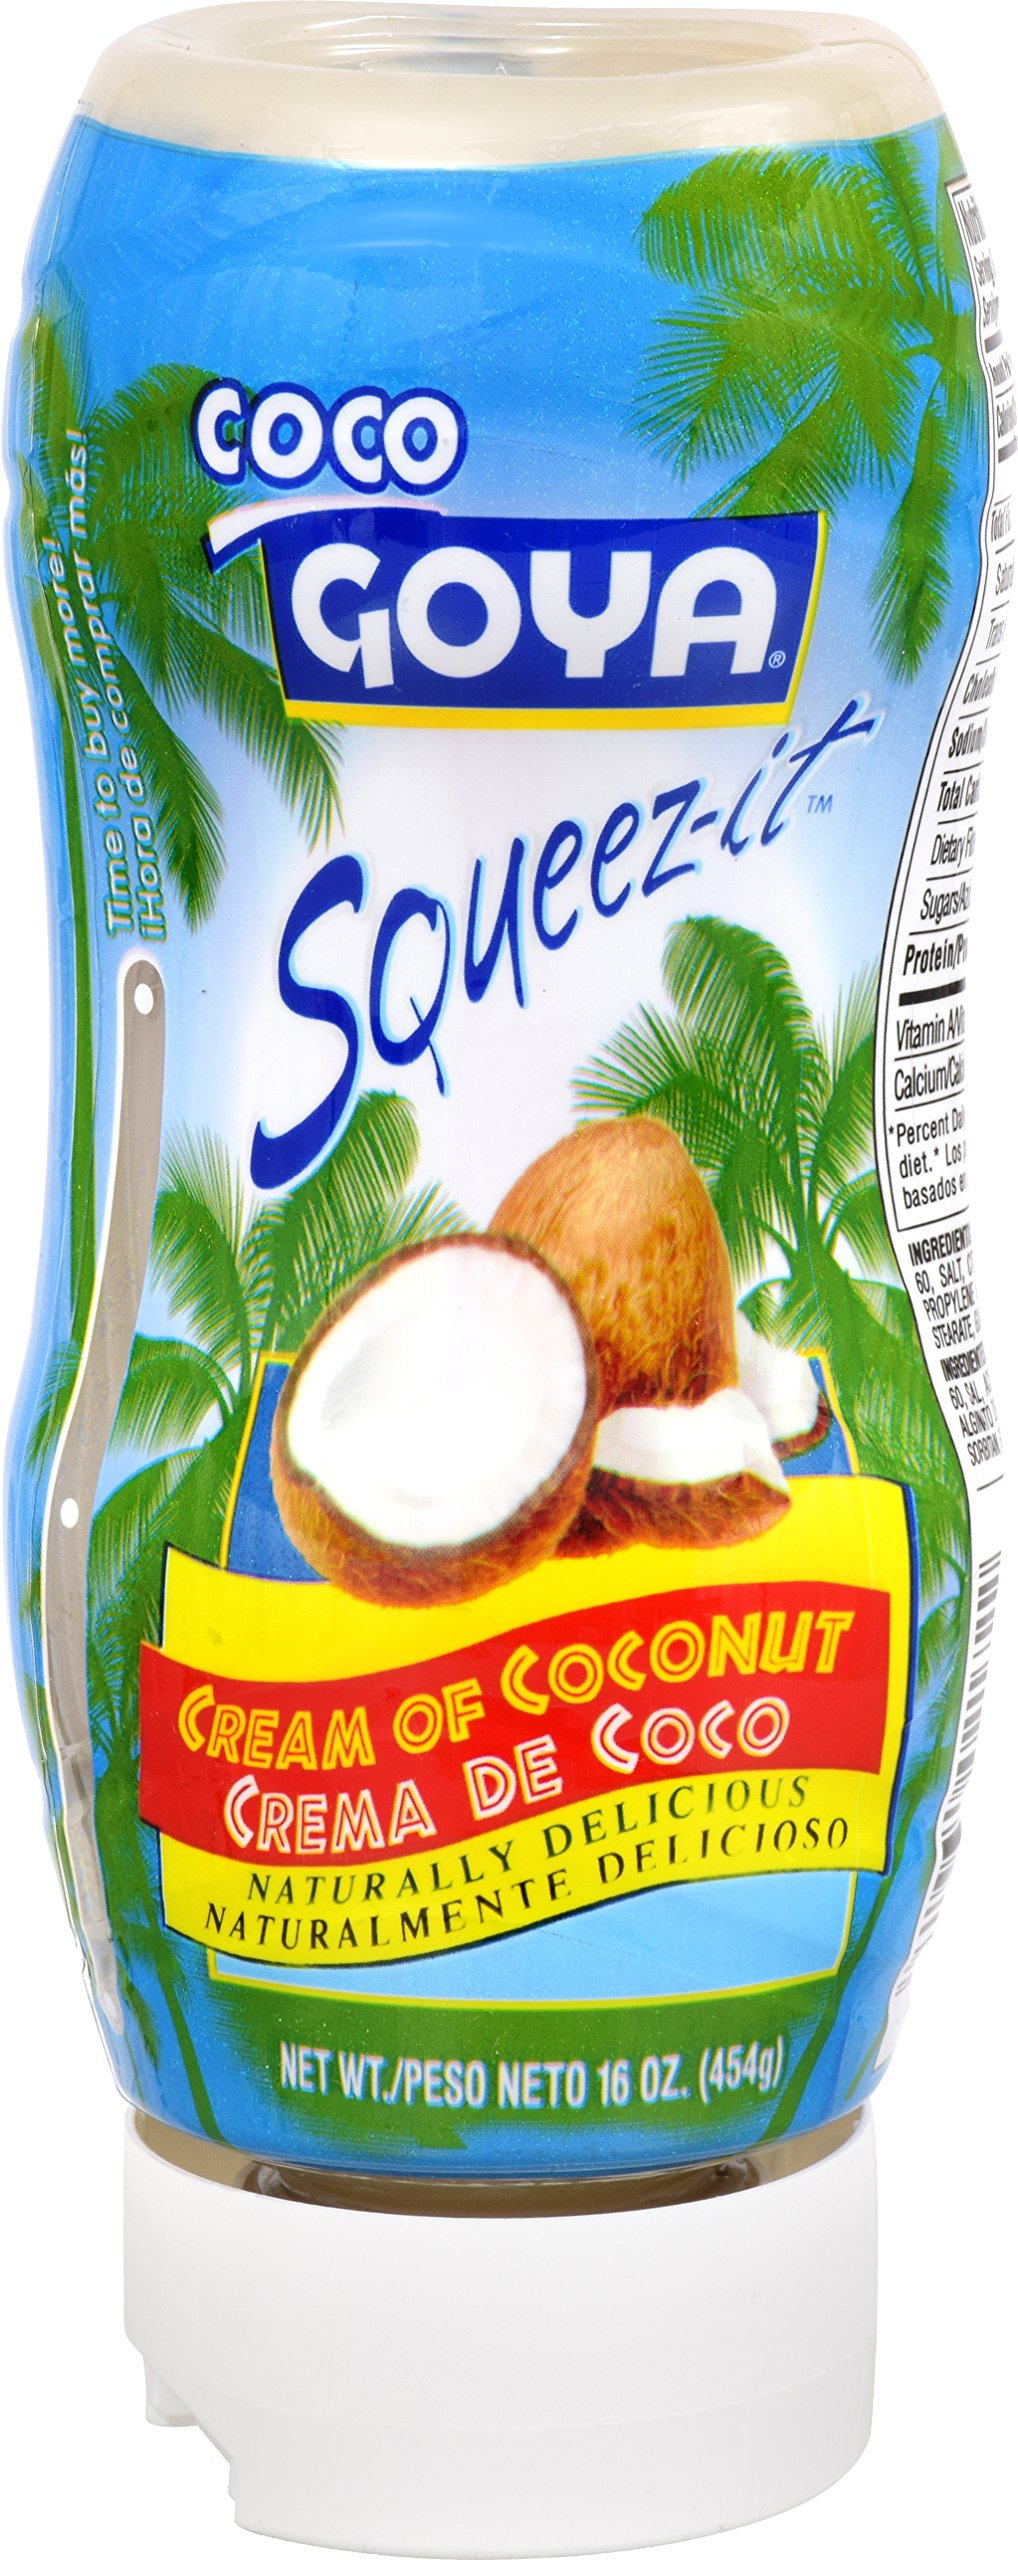 Goya Foods Cream of Coconut Squeeze-it, 16 Ounce (pack of 12)